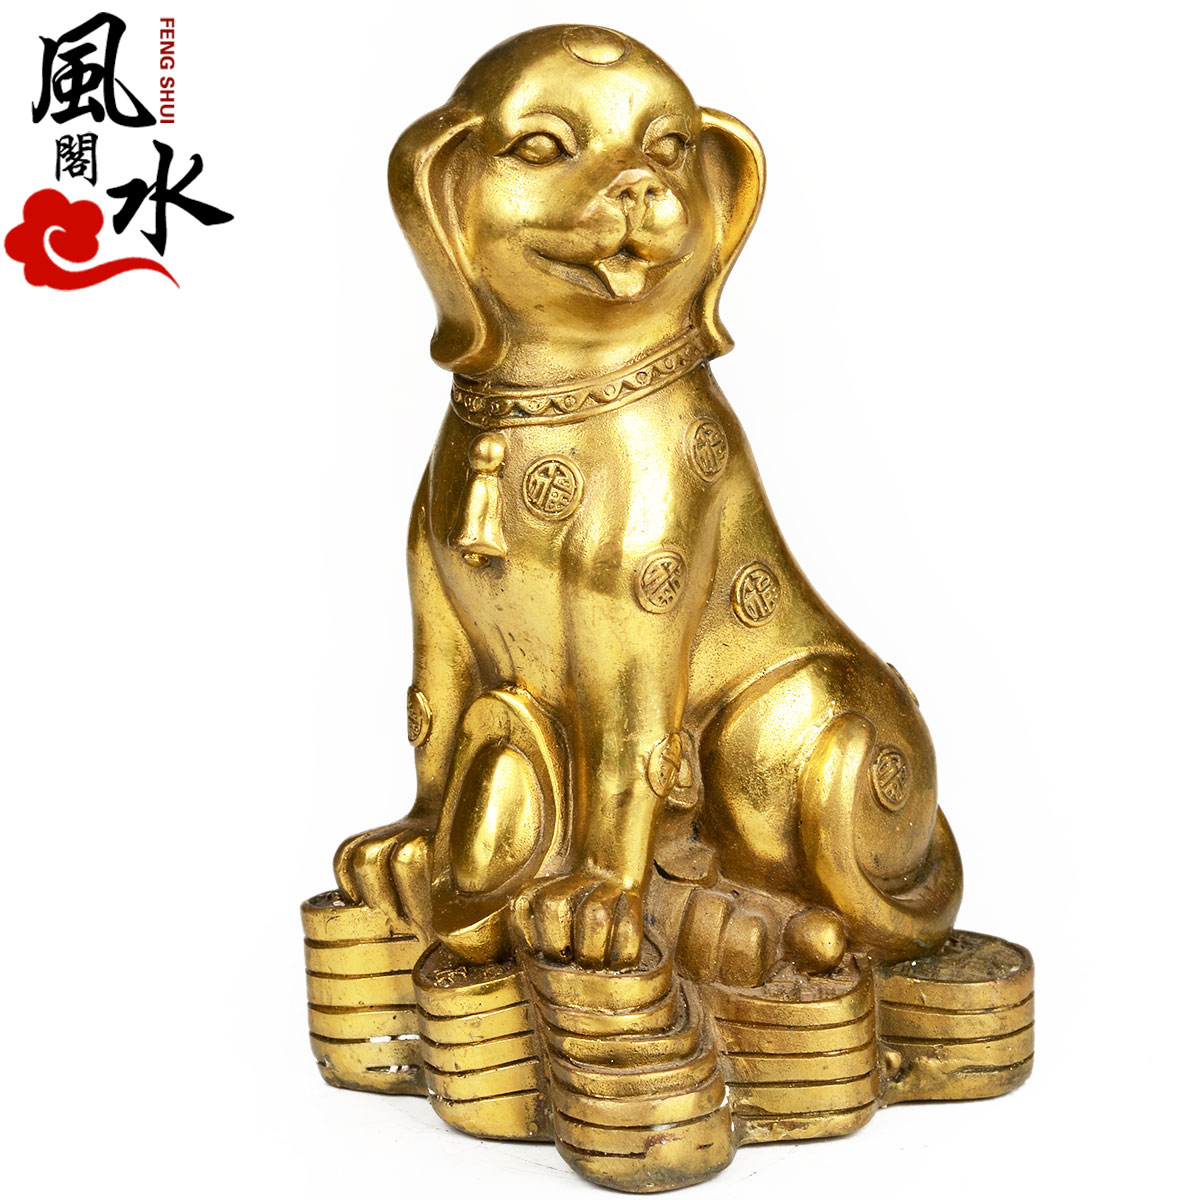 Feng shui court 2016 lunar new year tiger mascot feng shui home furnishings ornaments office gift ornaments